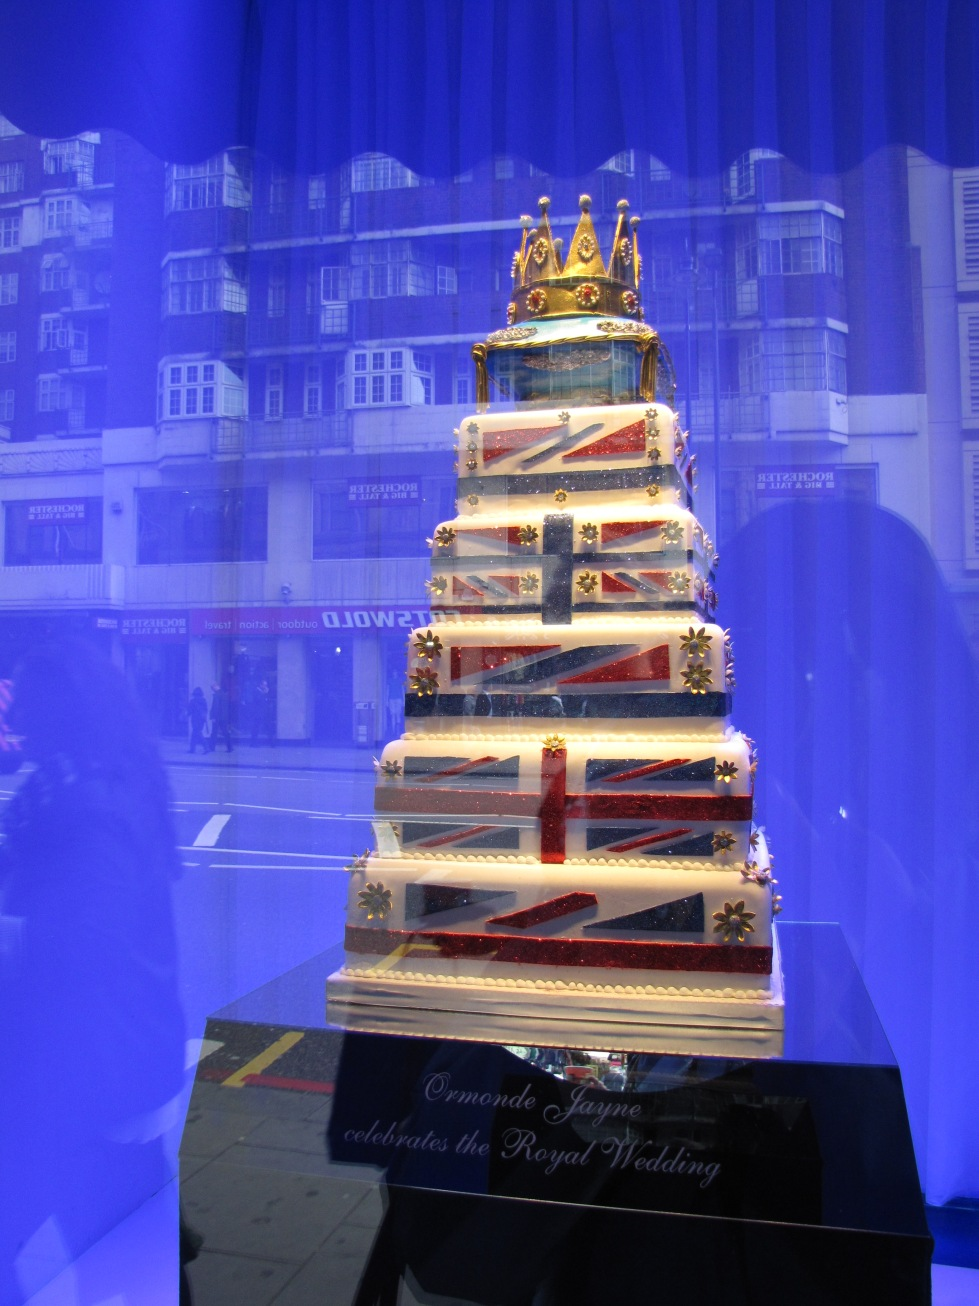 Cake on display in window of the famed Harrod's Department Store